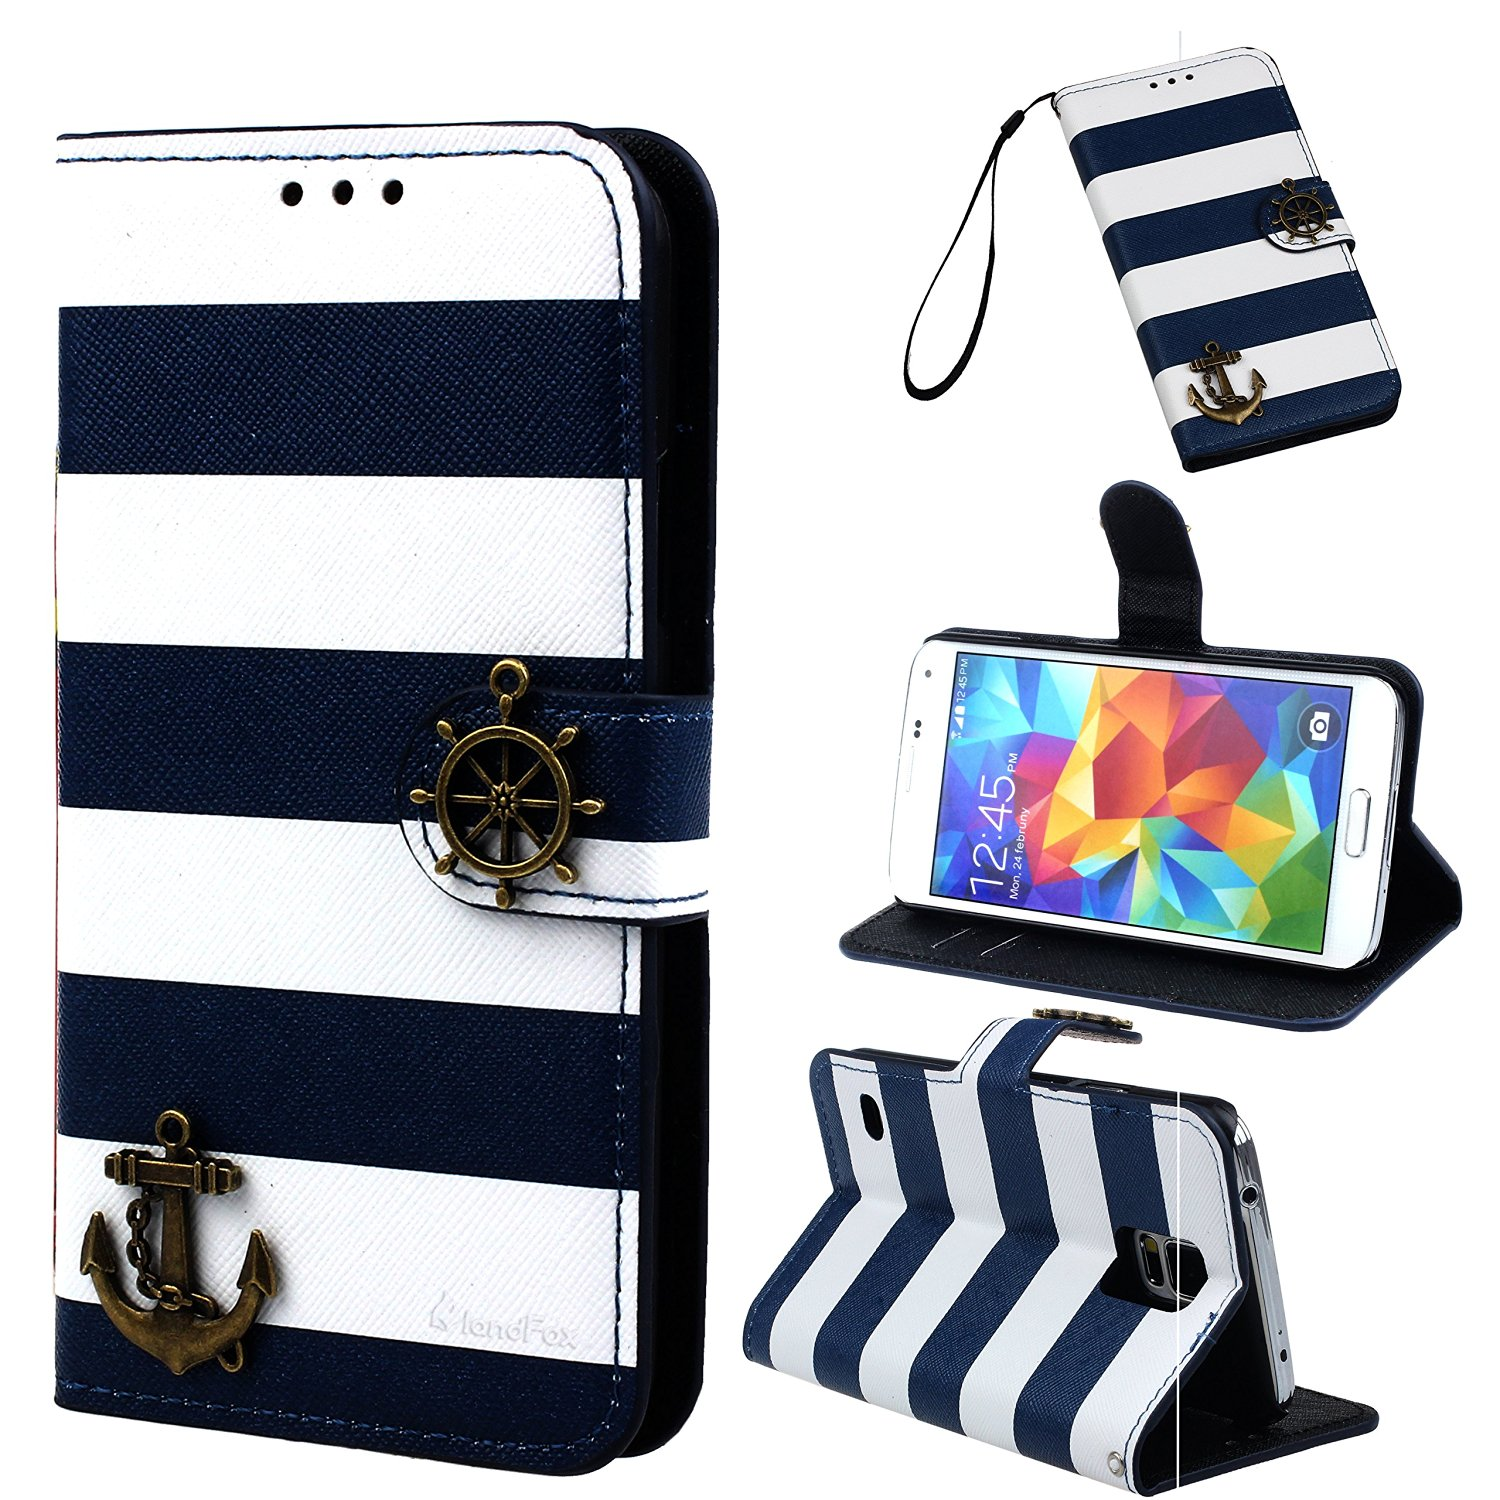 Bessky(TM) 1pc Hot Sell Navy Stripes Anchor Rudder Wallet Case Cover (Samsung Galaxy S5 i9600)